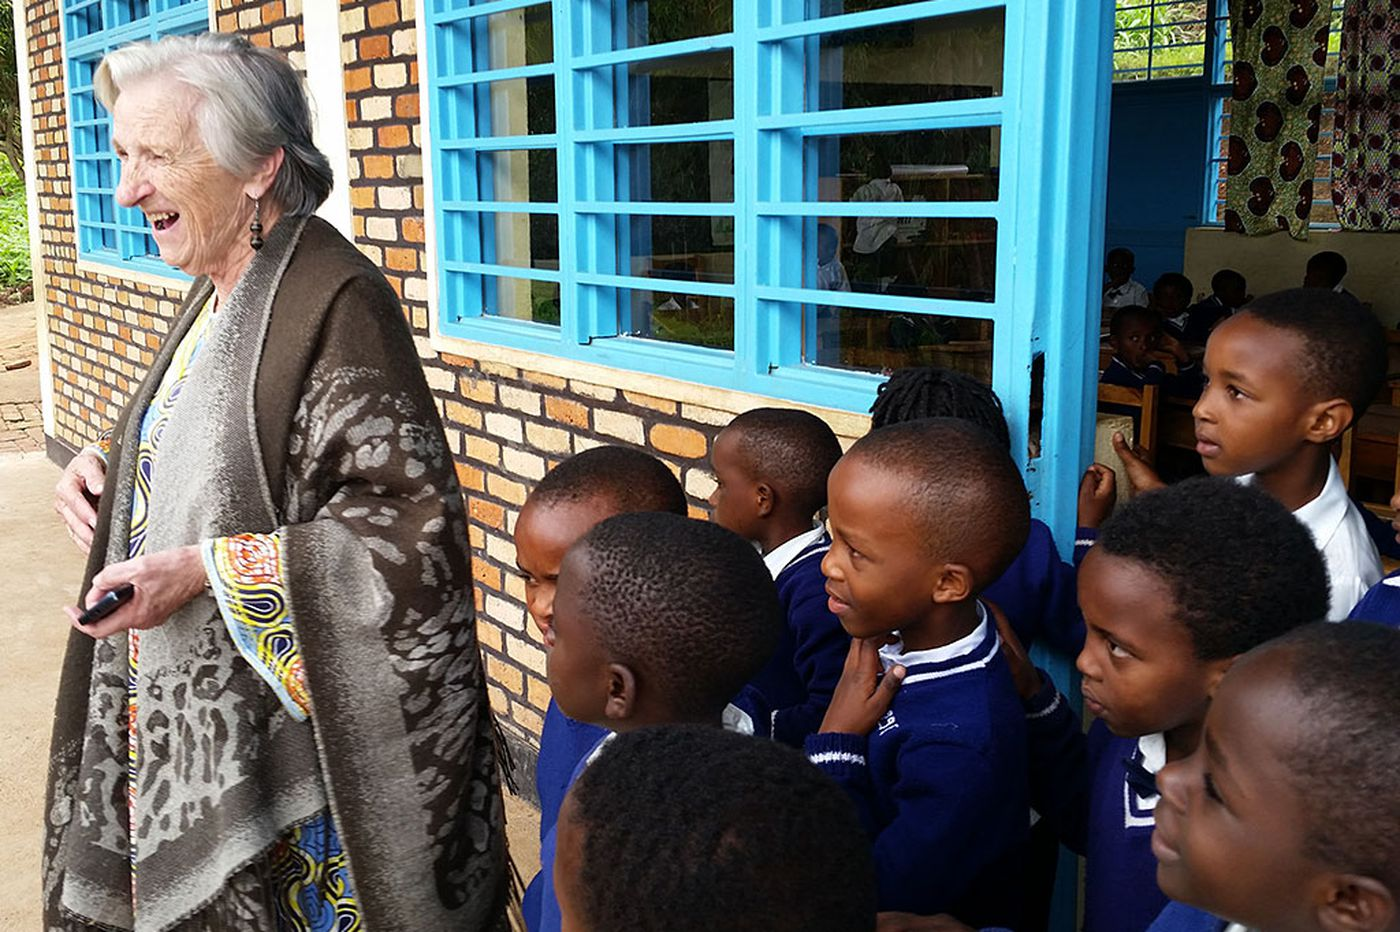 'Until the Lord calls me home, there is no end:' At 88, Pennsylvania's 'Mama Arlene' has more to give Rwanda's children